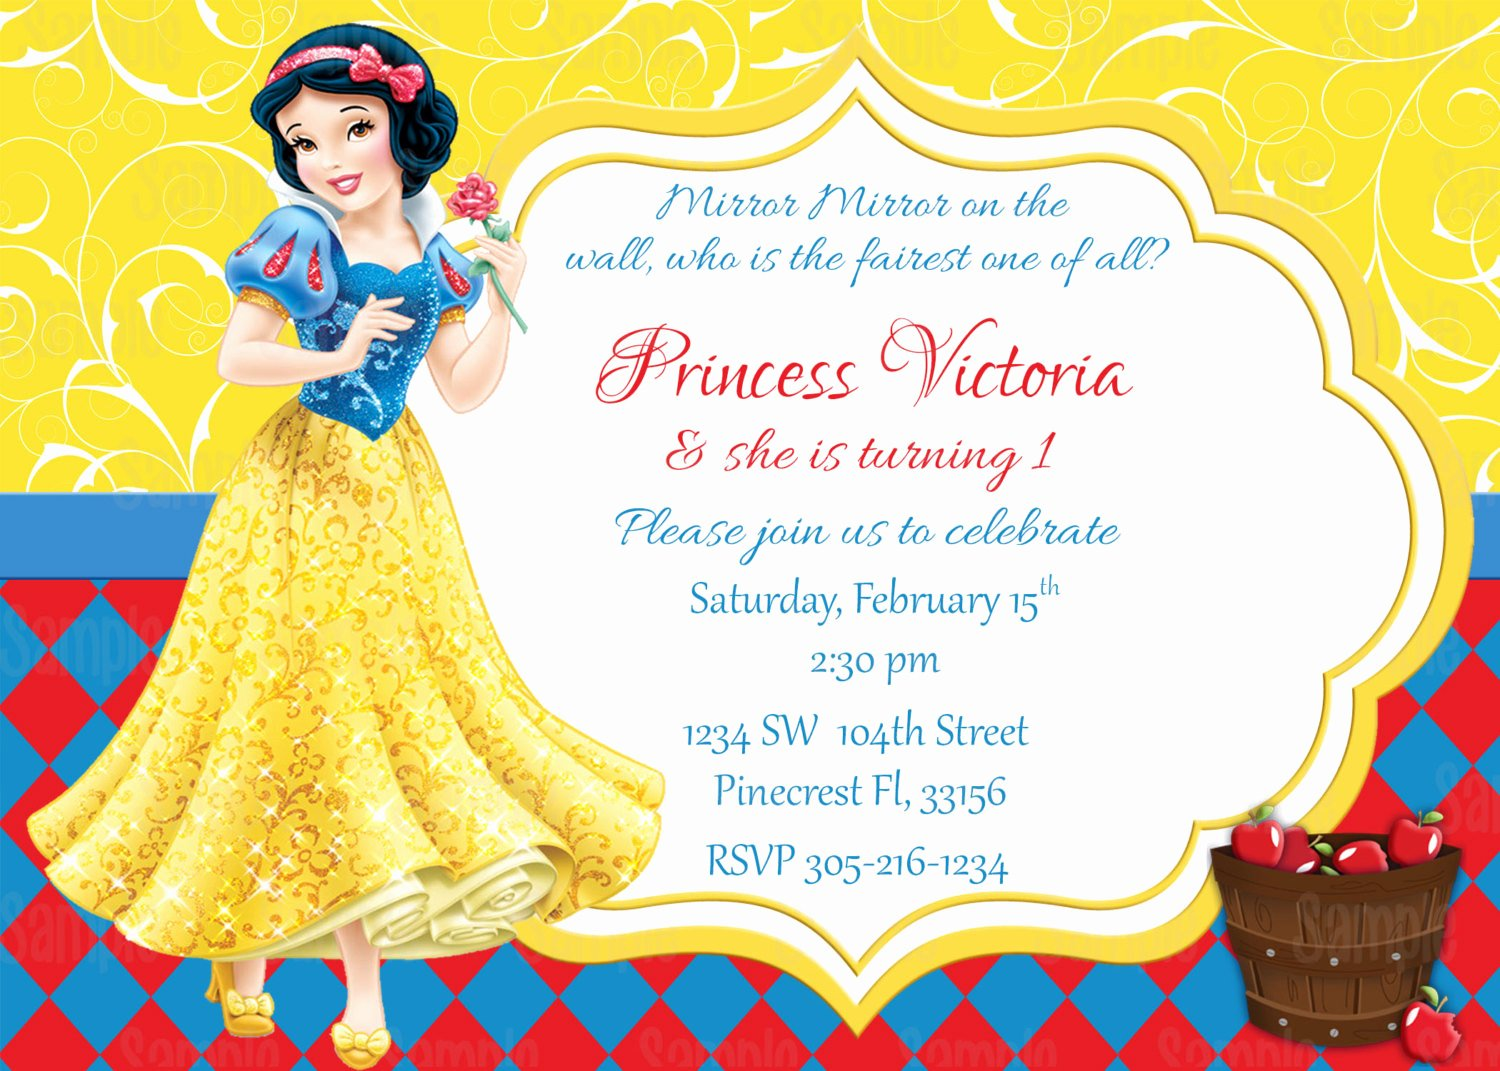 Snow White Invitation Template Fresh Snow White Printable Birthday Party by Partyinnovations09